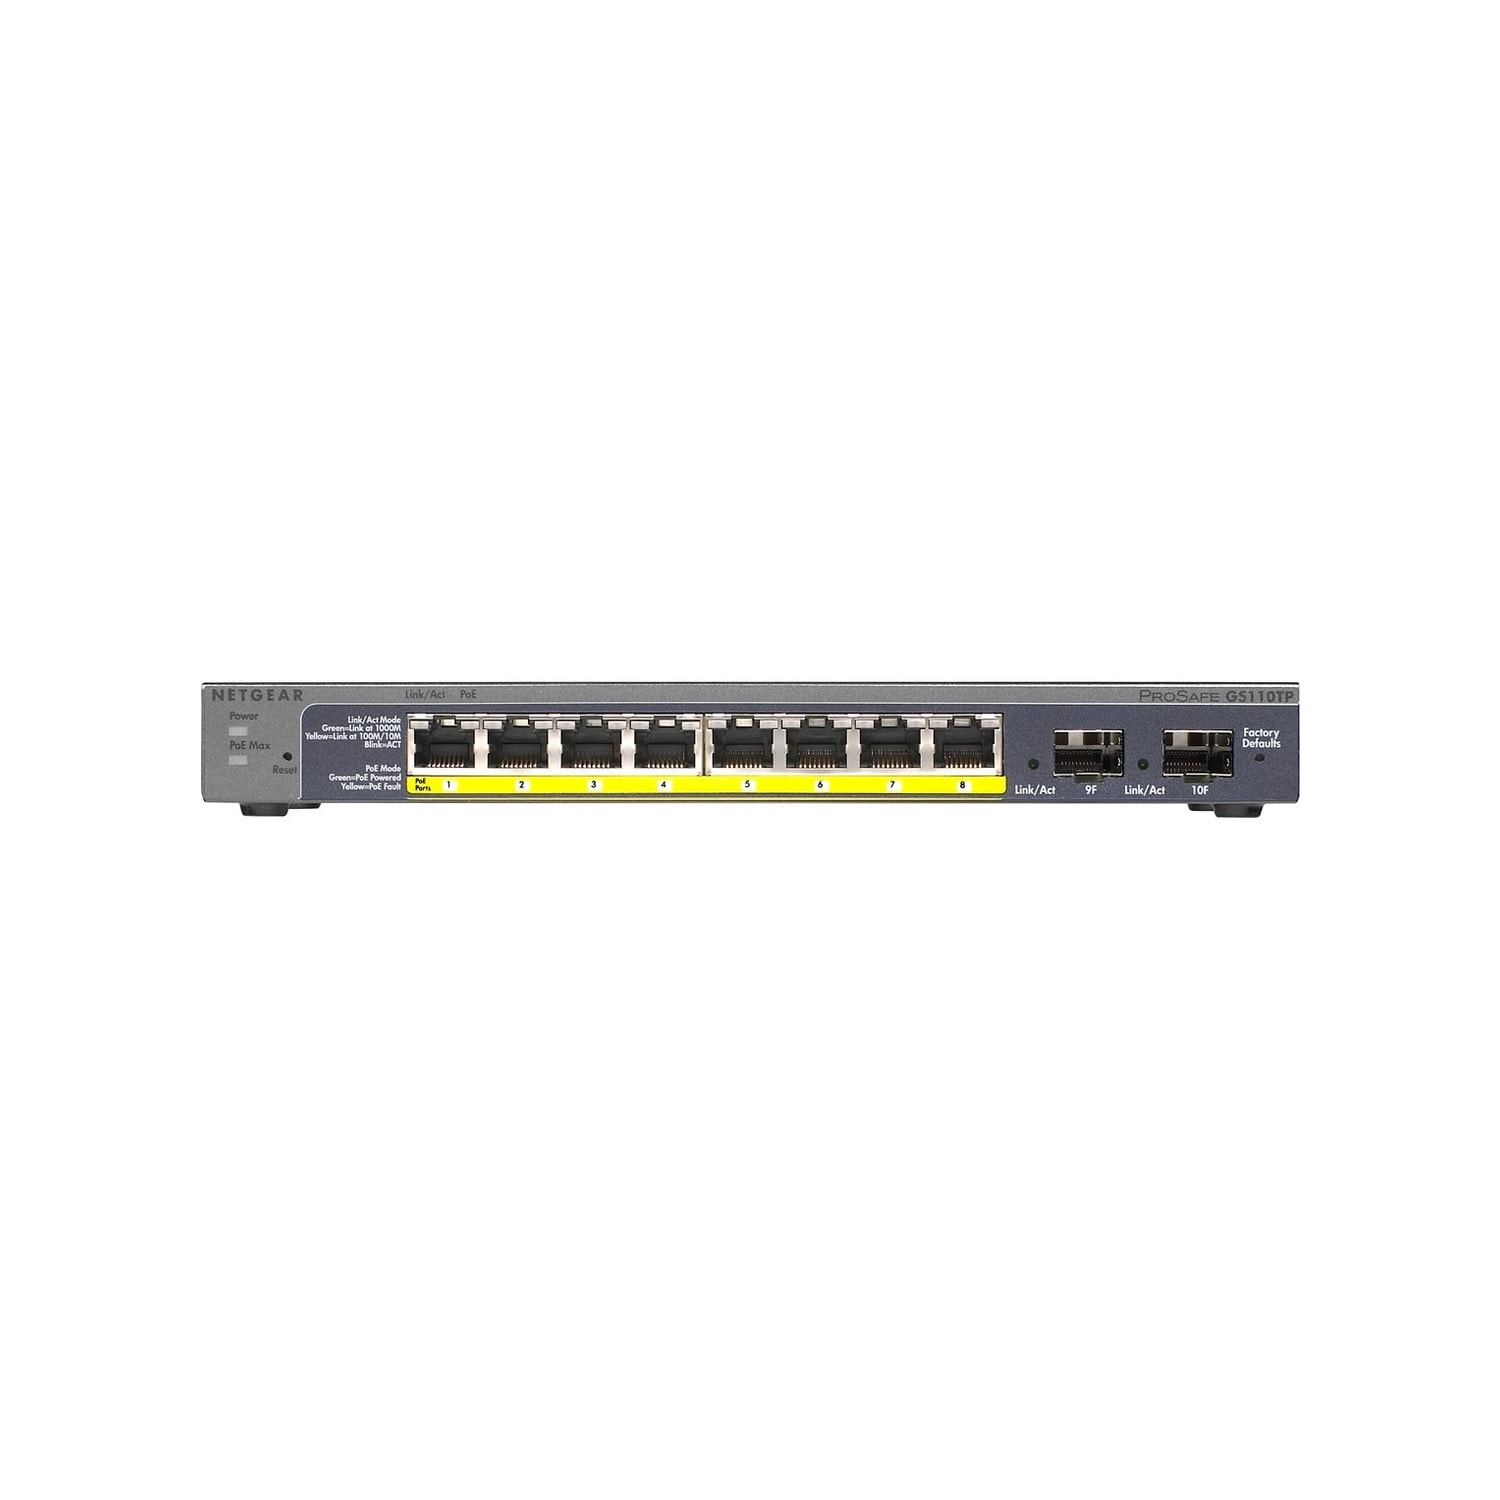 Netgear Gs110tp Prosafe 8port Gigabit Switch Netgeargs110tp100nas